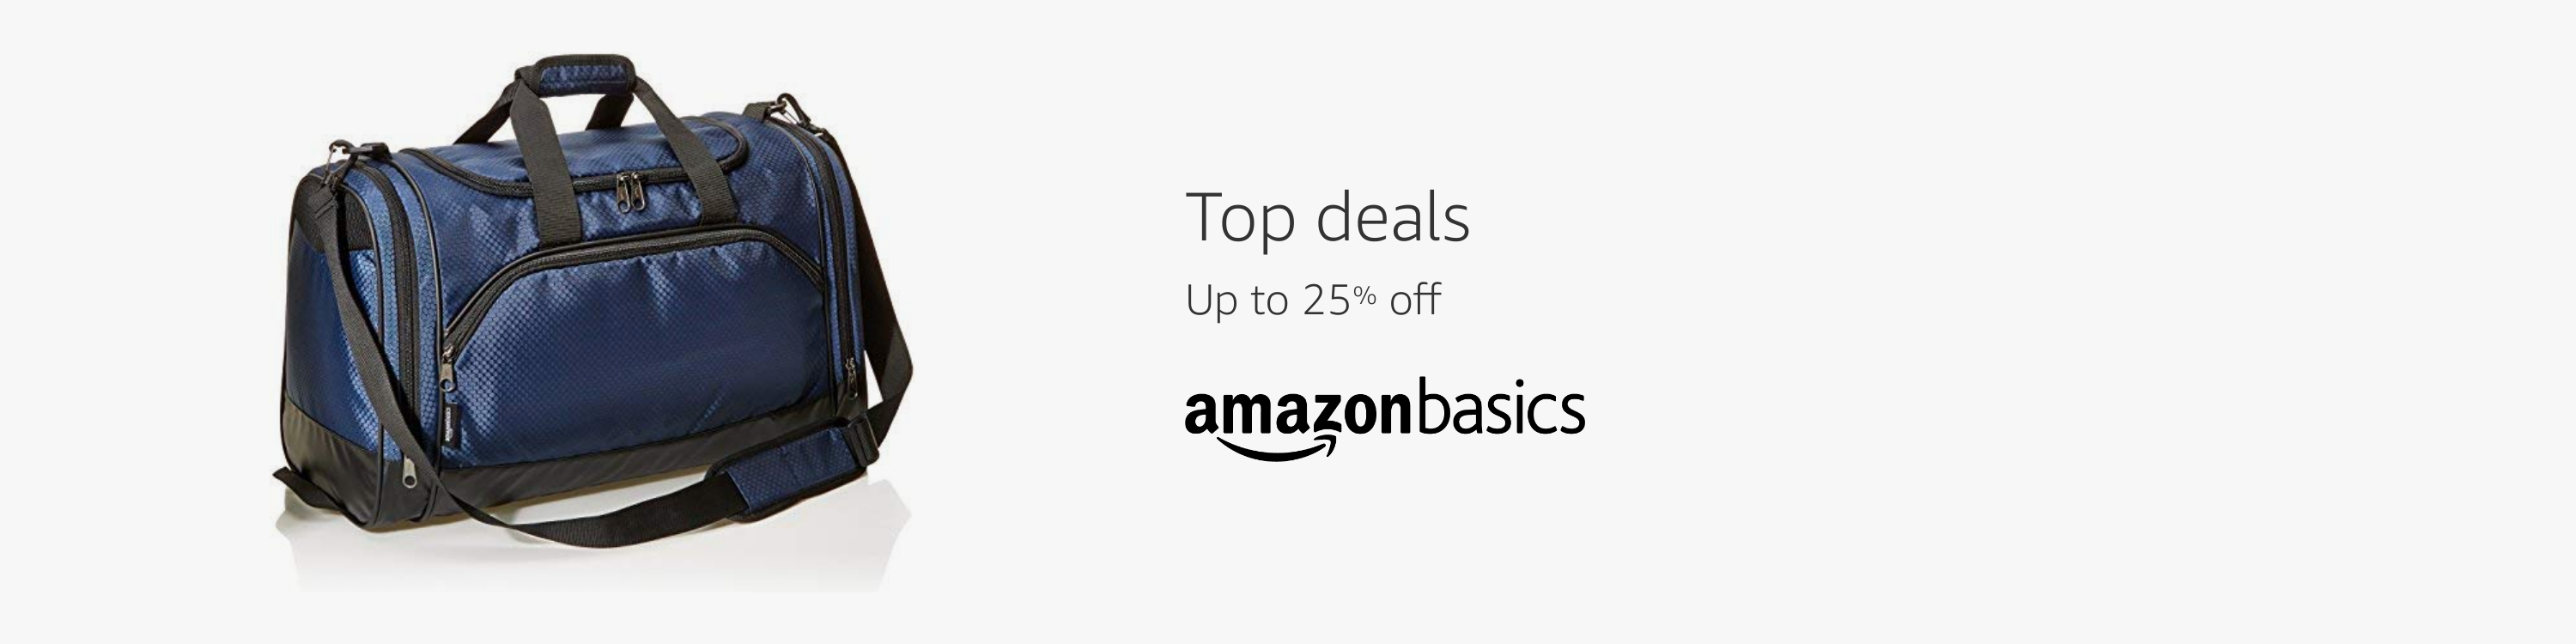 Top deals Up to 25% from AmazonBasics